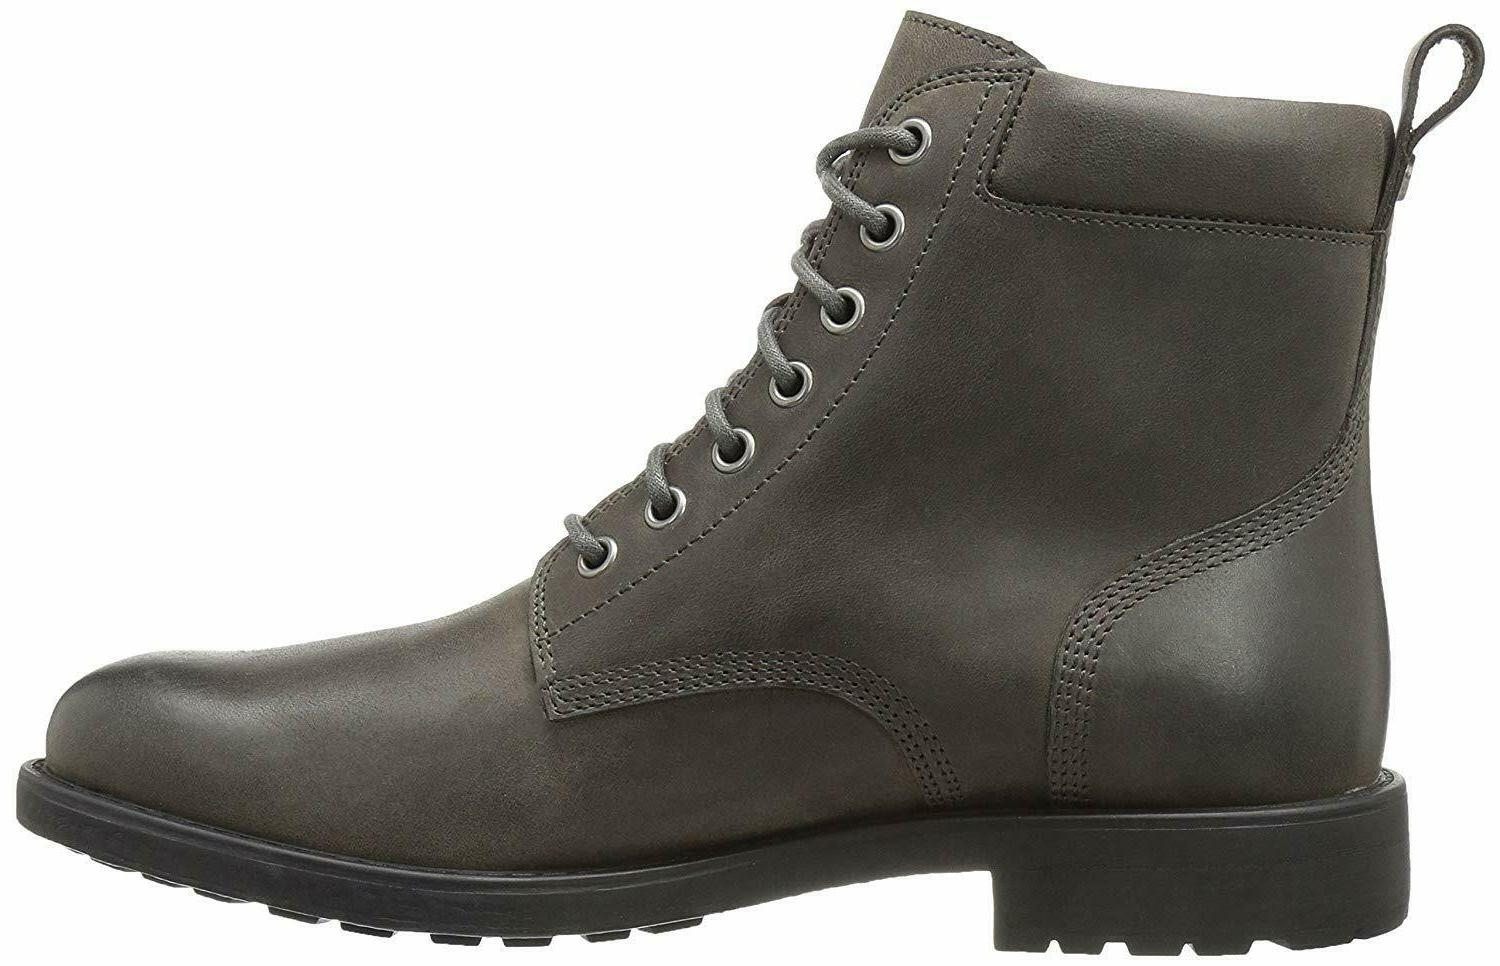 206 Lace-up Boot, Gray, D